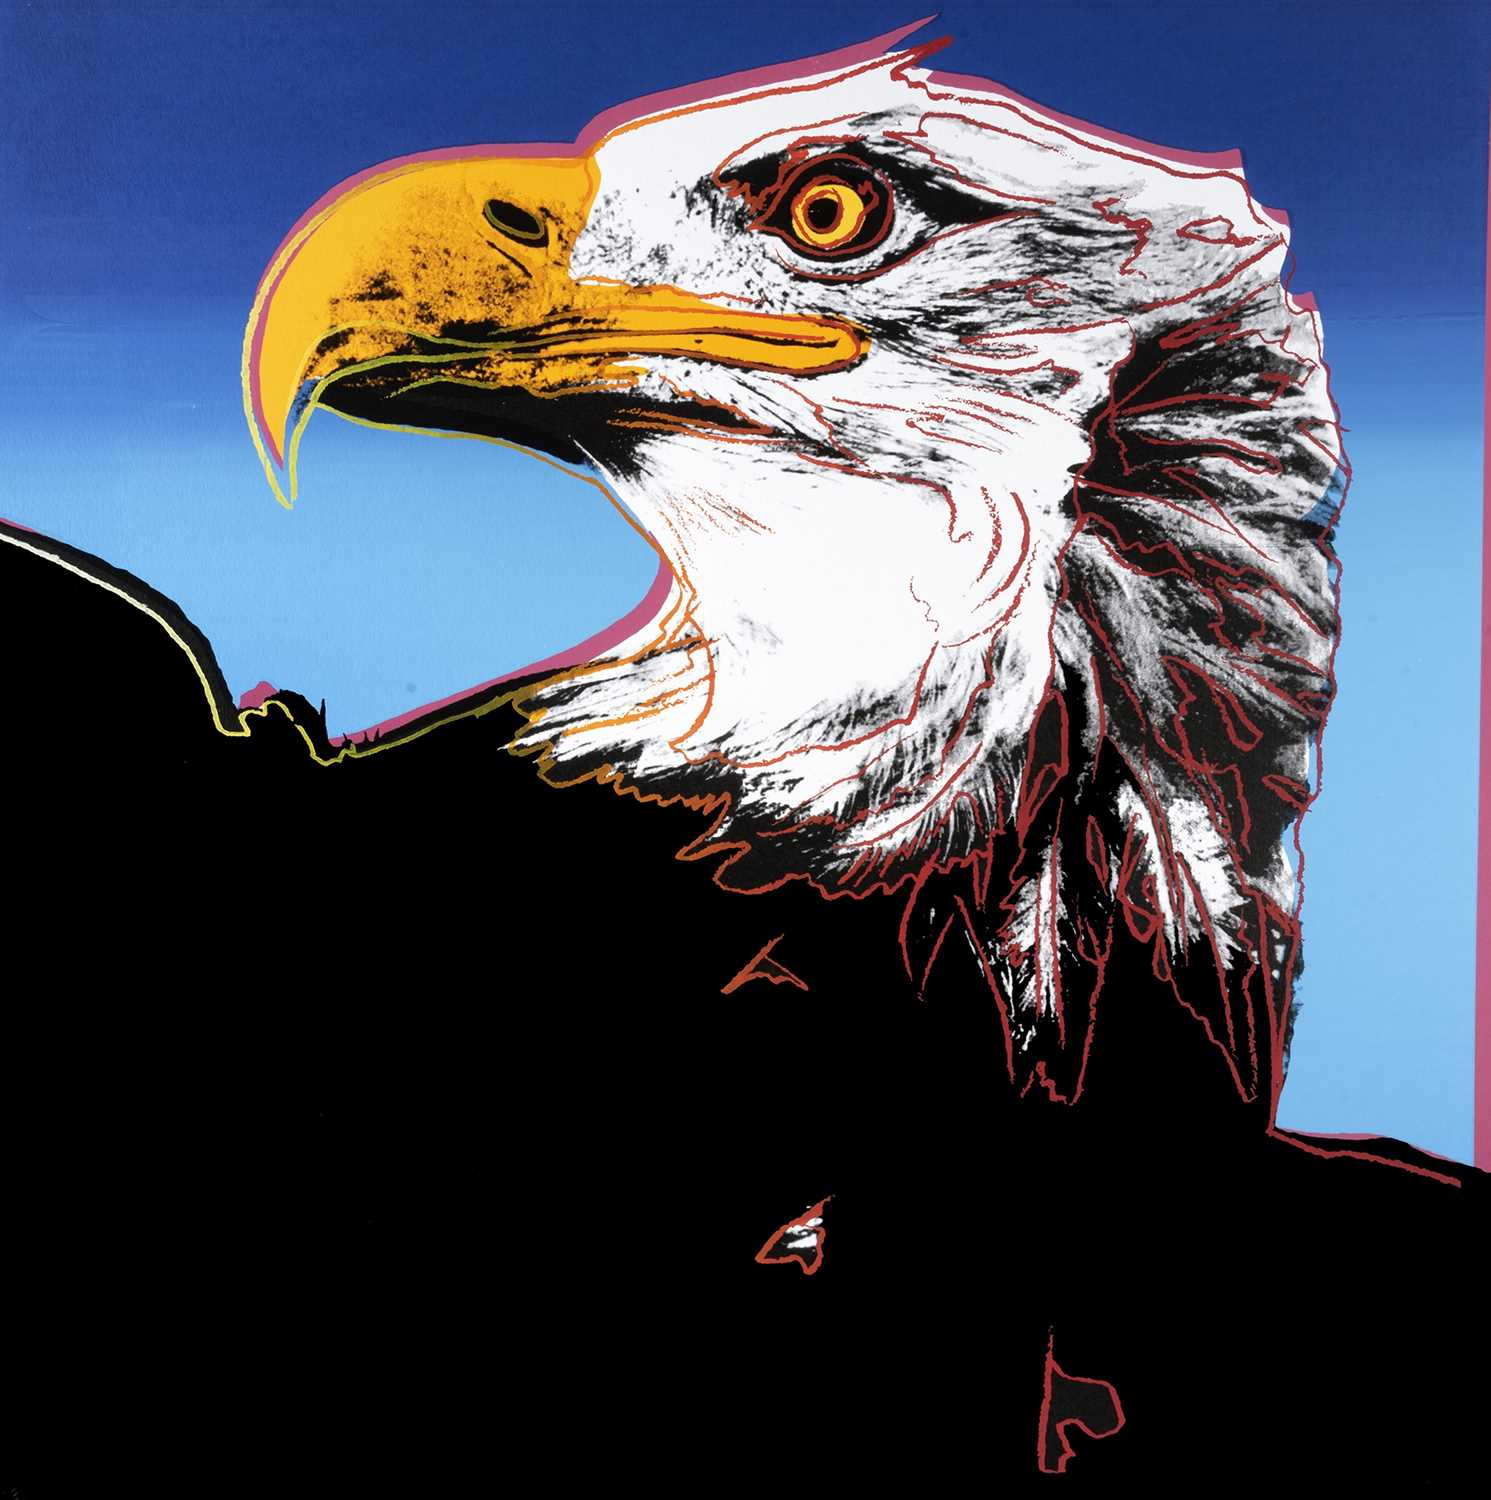 Lot 3-Andy Warhol (American 1928-1987), 'Bald Eagle, from Endangered Species', 1983